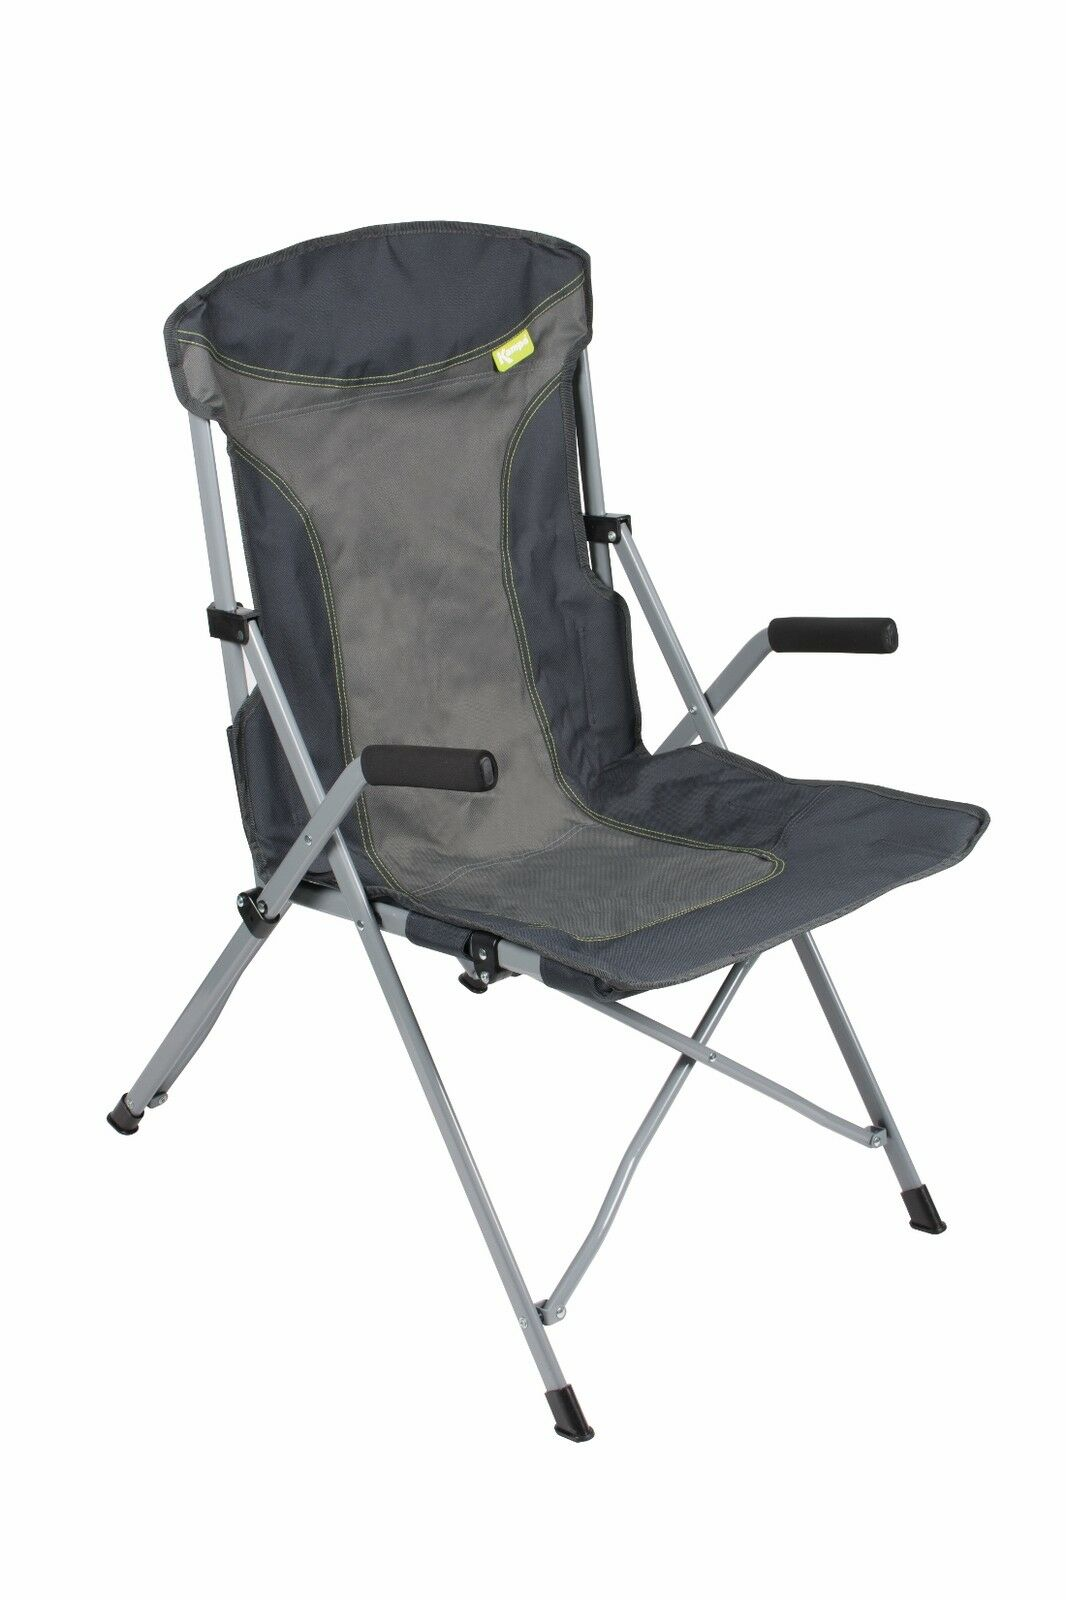 EASY IN   EASY OUT PORTABLE FOLDING CAMPING CHAIR ARMCHAIR